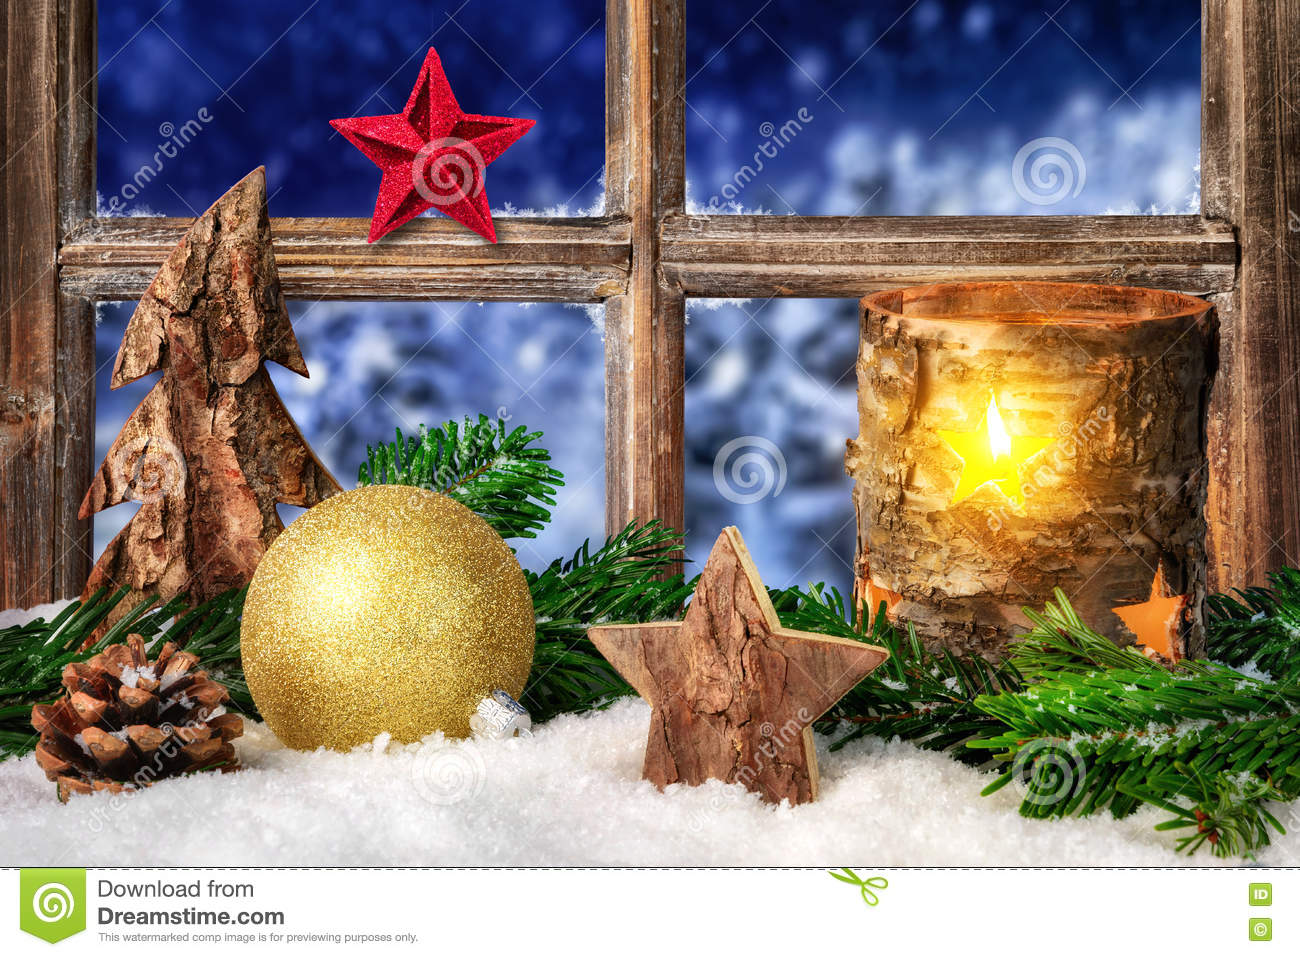 Download Seasonal Arrangement On The Window Sill Stock Image - Image of cool, evening: 78817407